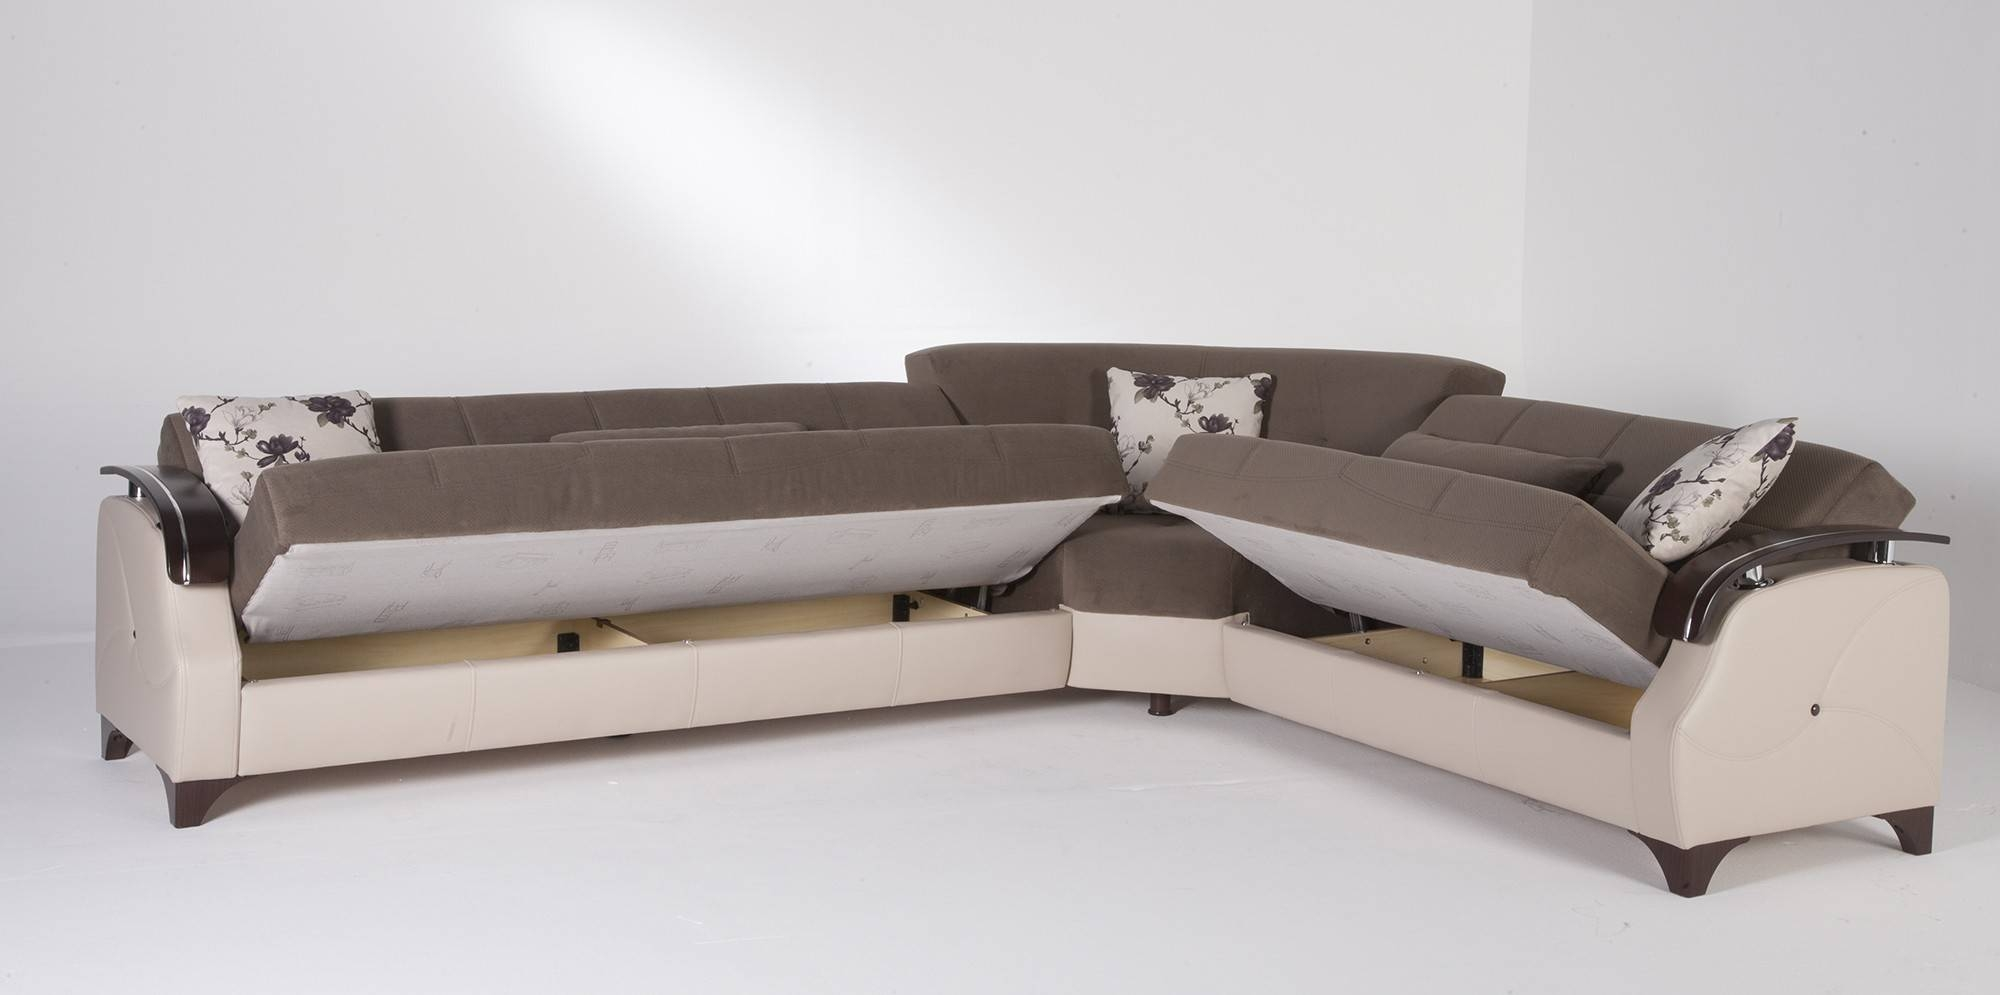 Sectional Sleeper Sofas | Roselawnlutheran regarding Queen Convertible Sofas (Image 10 of 15)